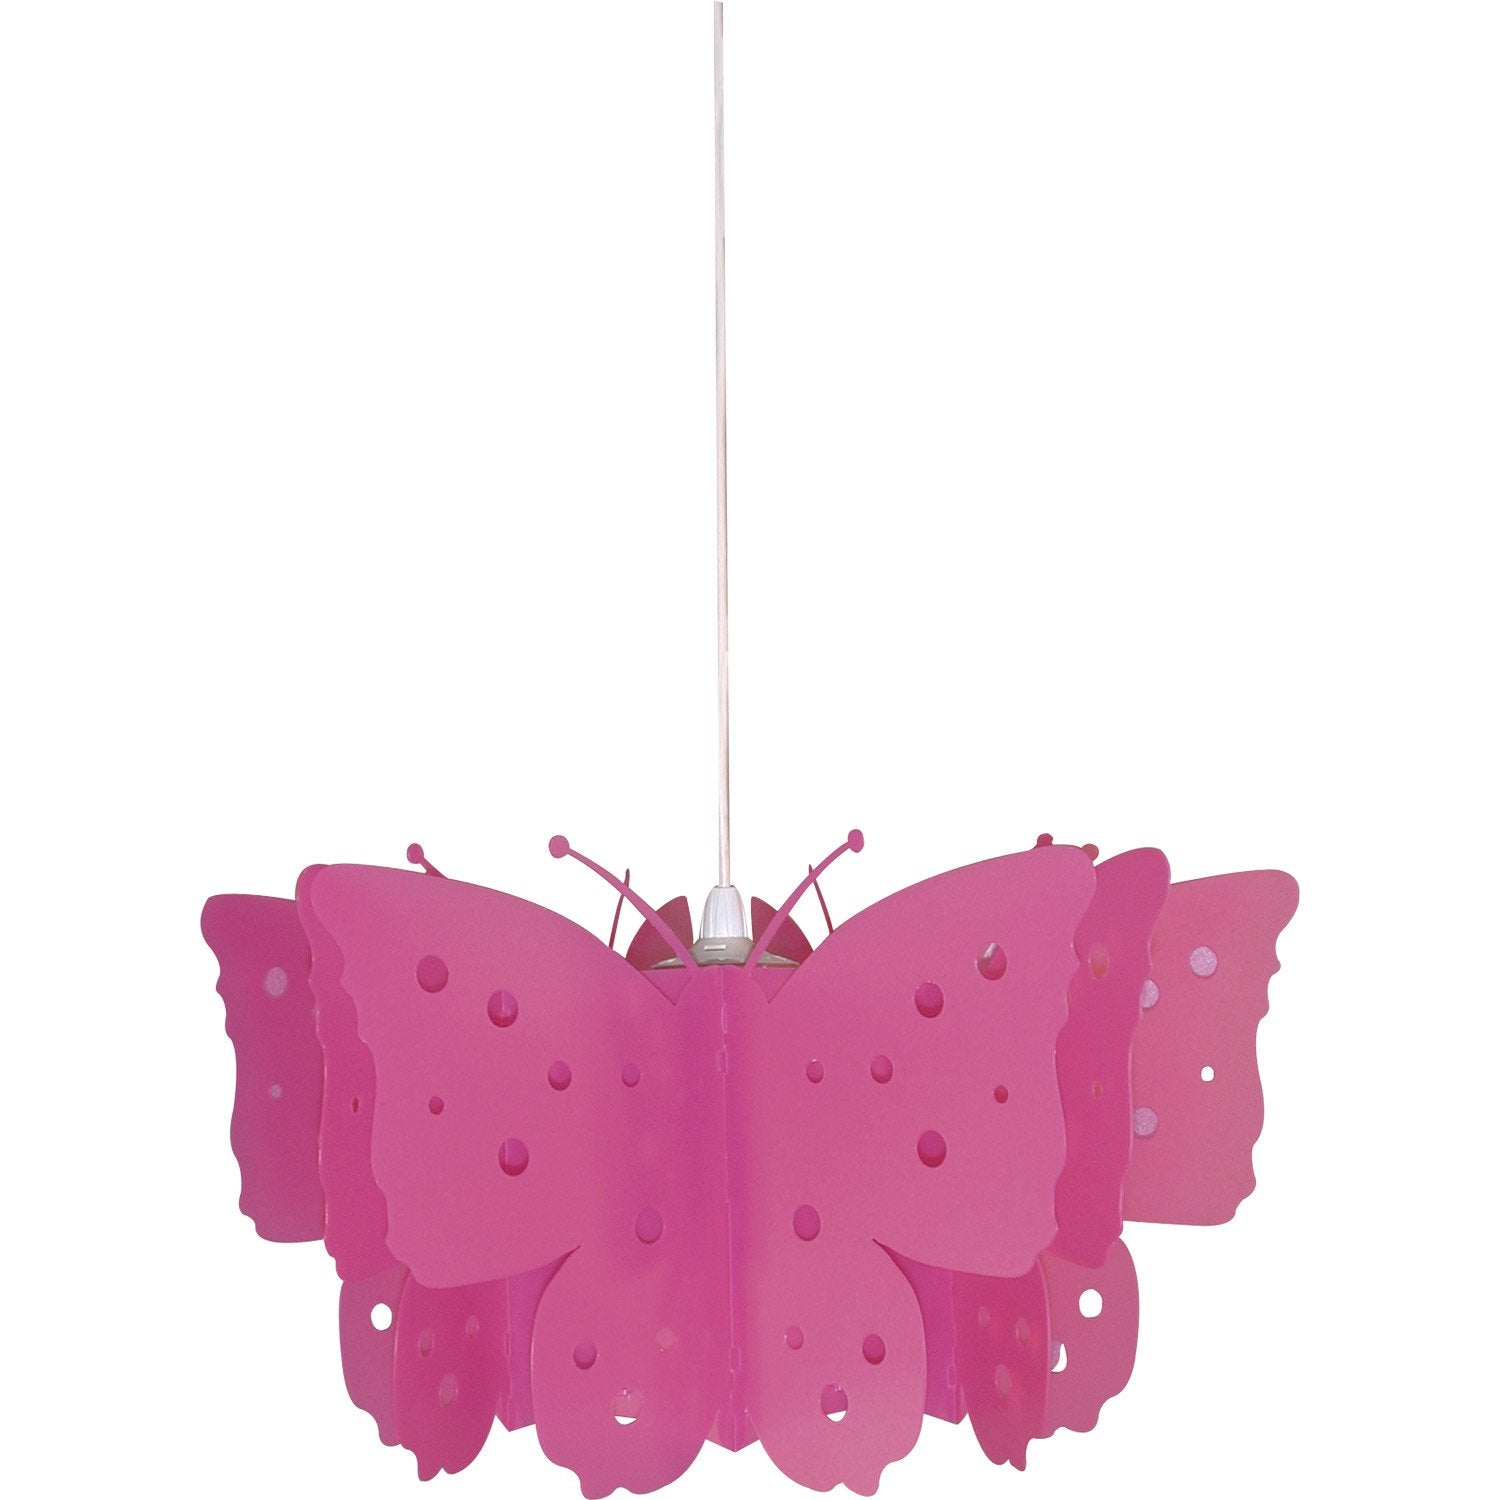 luminaire enfant fille luminaire chambre enfant lustre suspension lampe pour chambre bebe fille. Black Bedroom Furniture Sets. Home Design Ideas